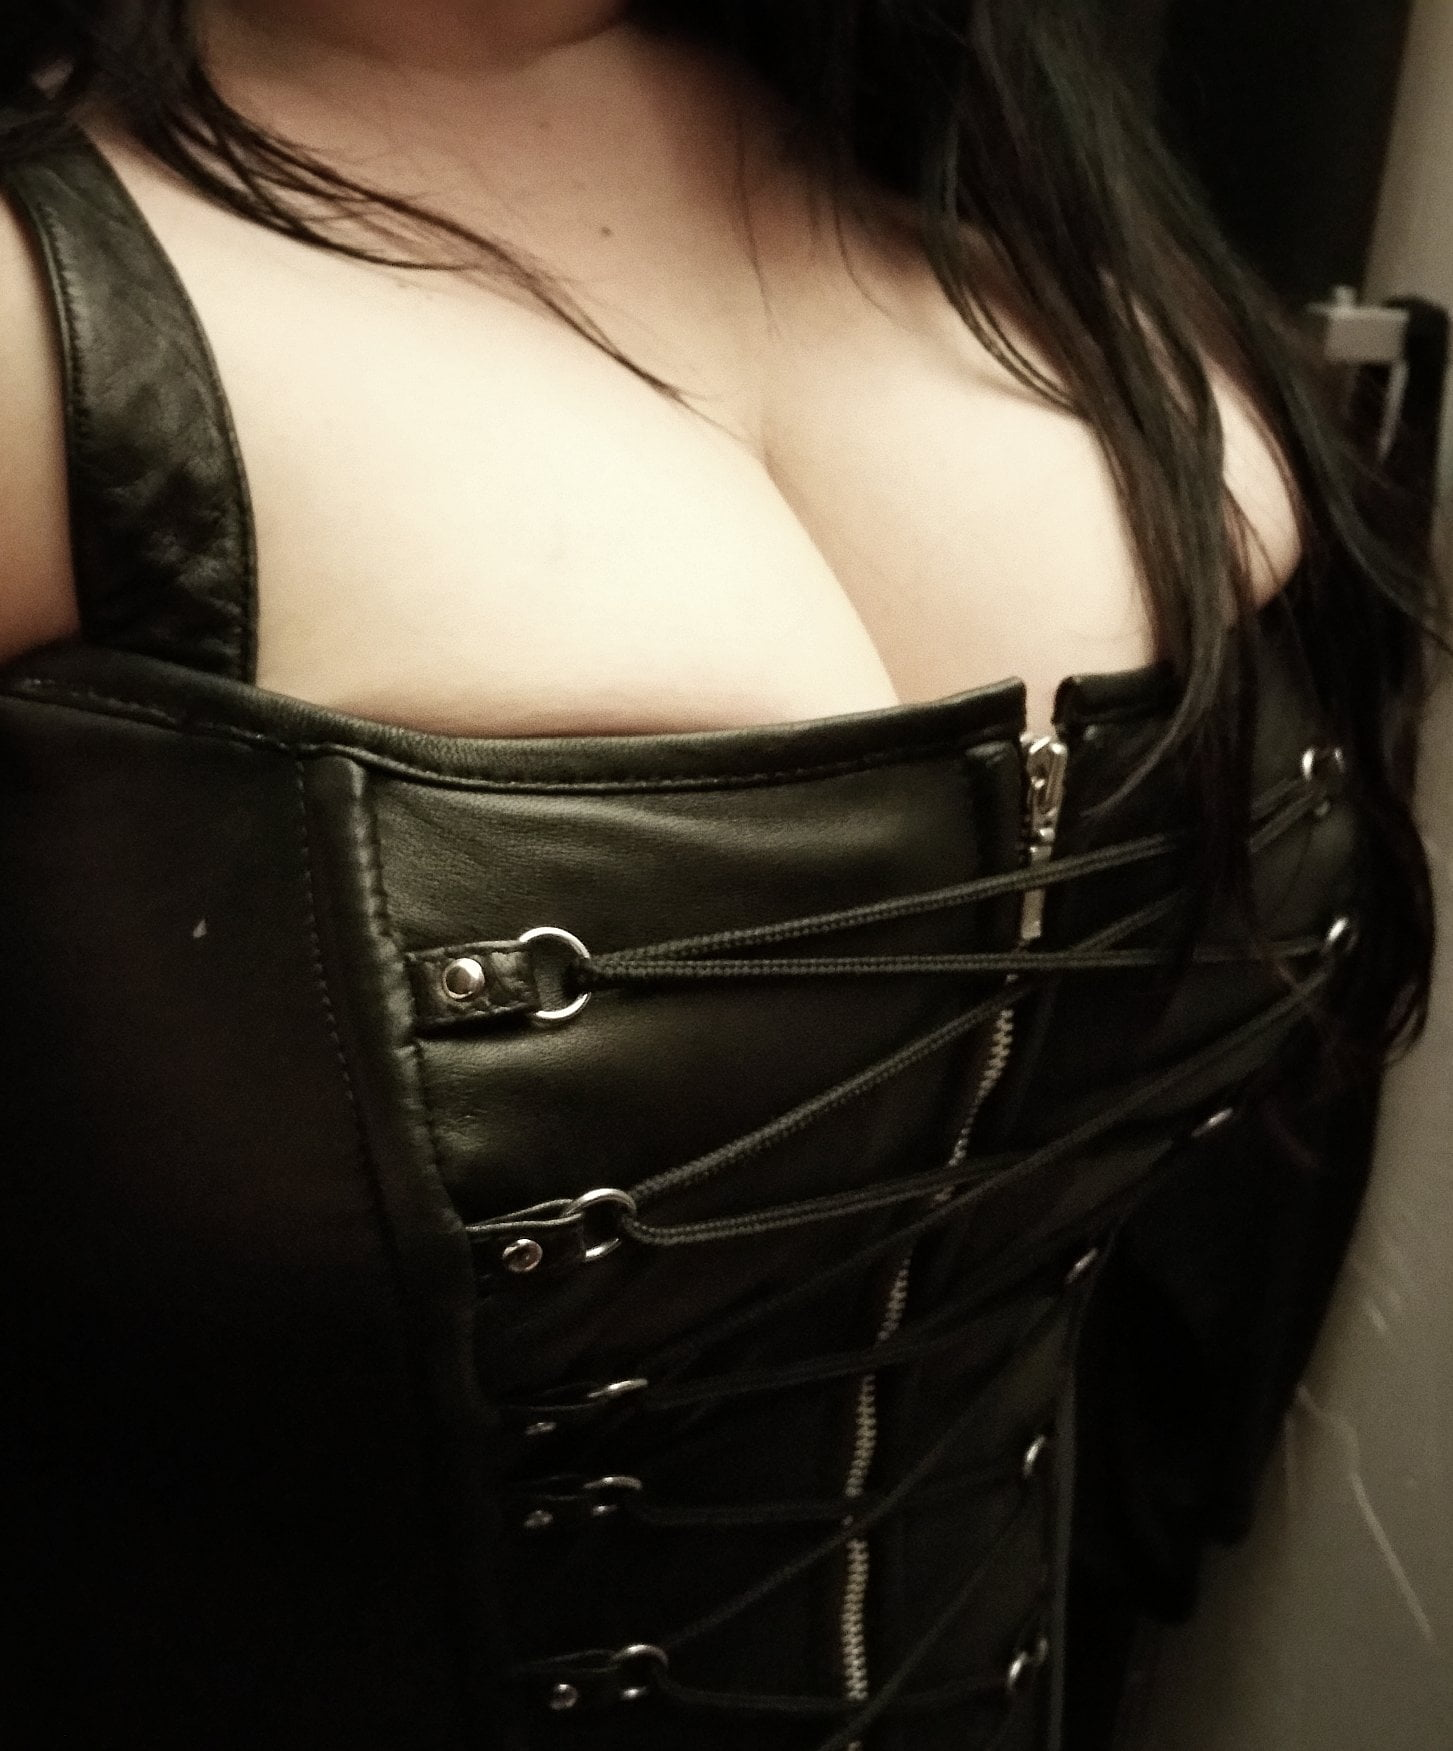 plus-size-leather-corsets-at-east-side-re-rides-01